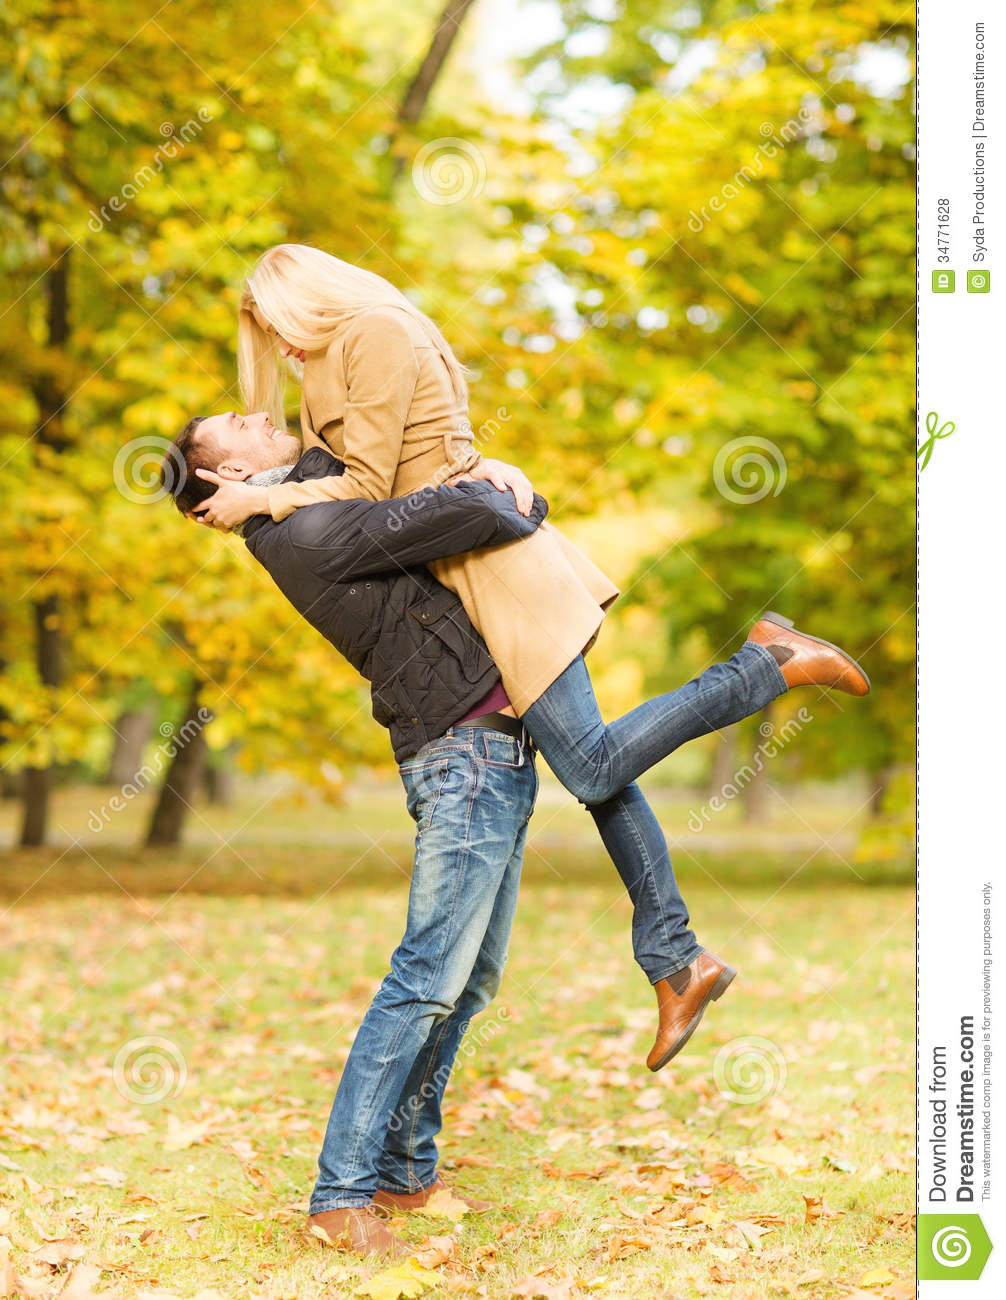 Romantic Couple Playing In The Autumn Park Royalty Free Stock     Romantic couple playing in the autumn park